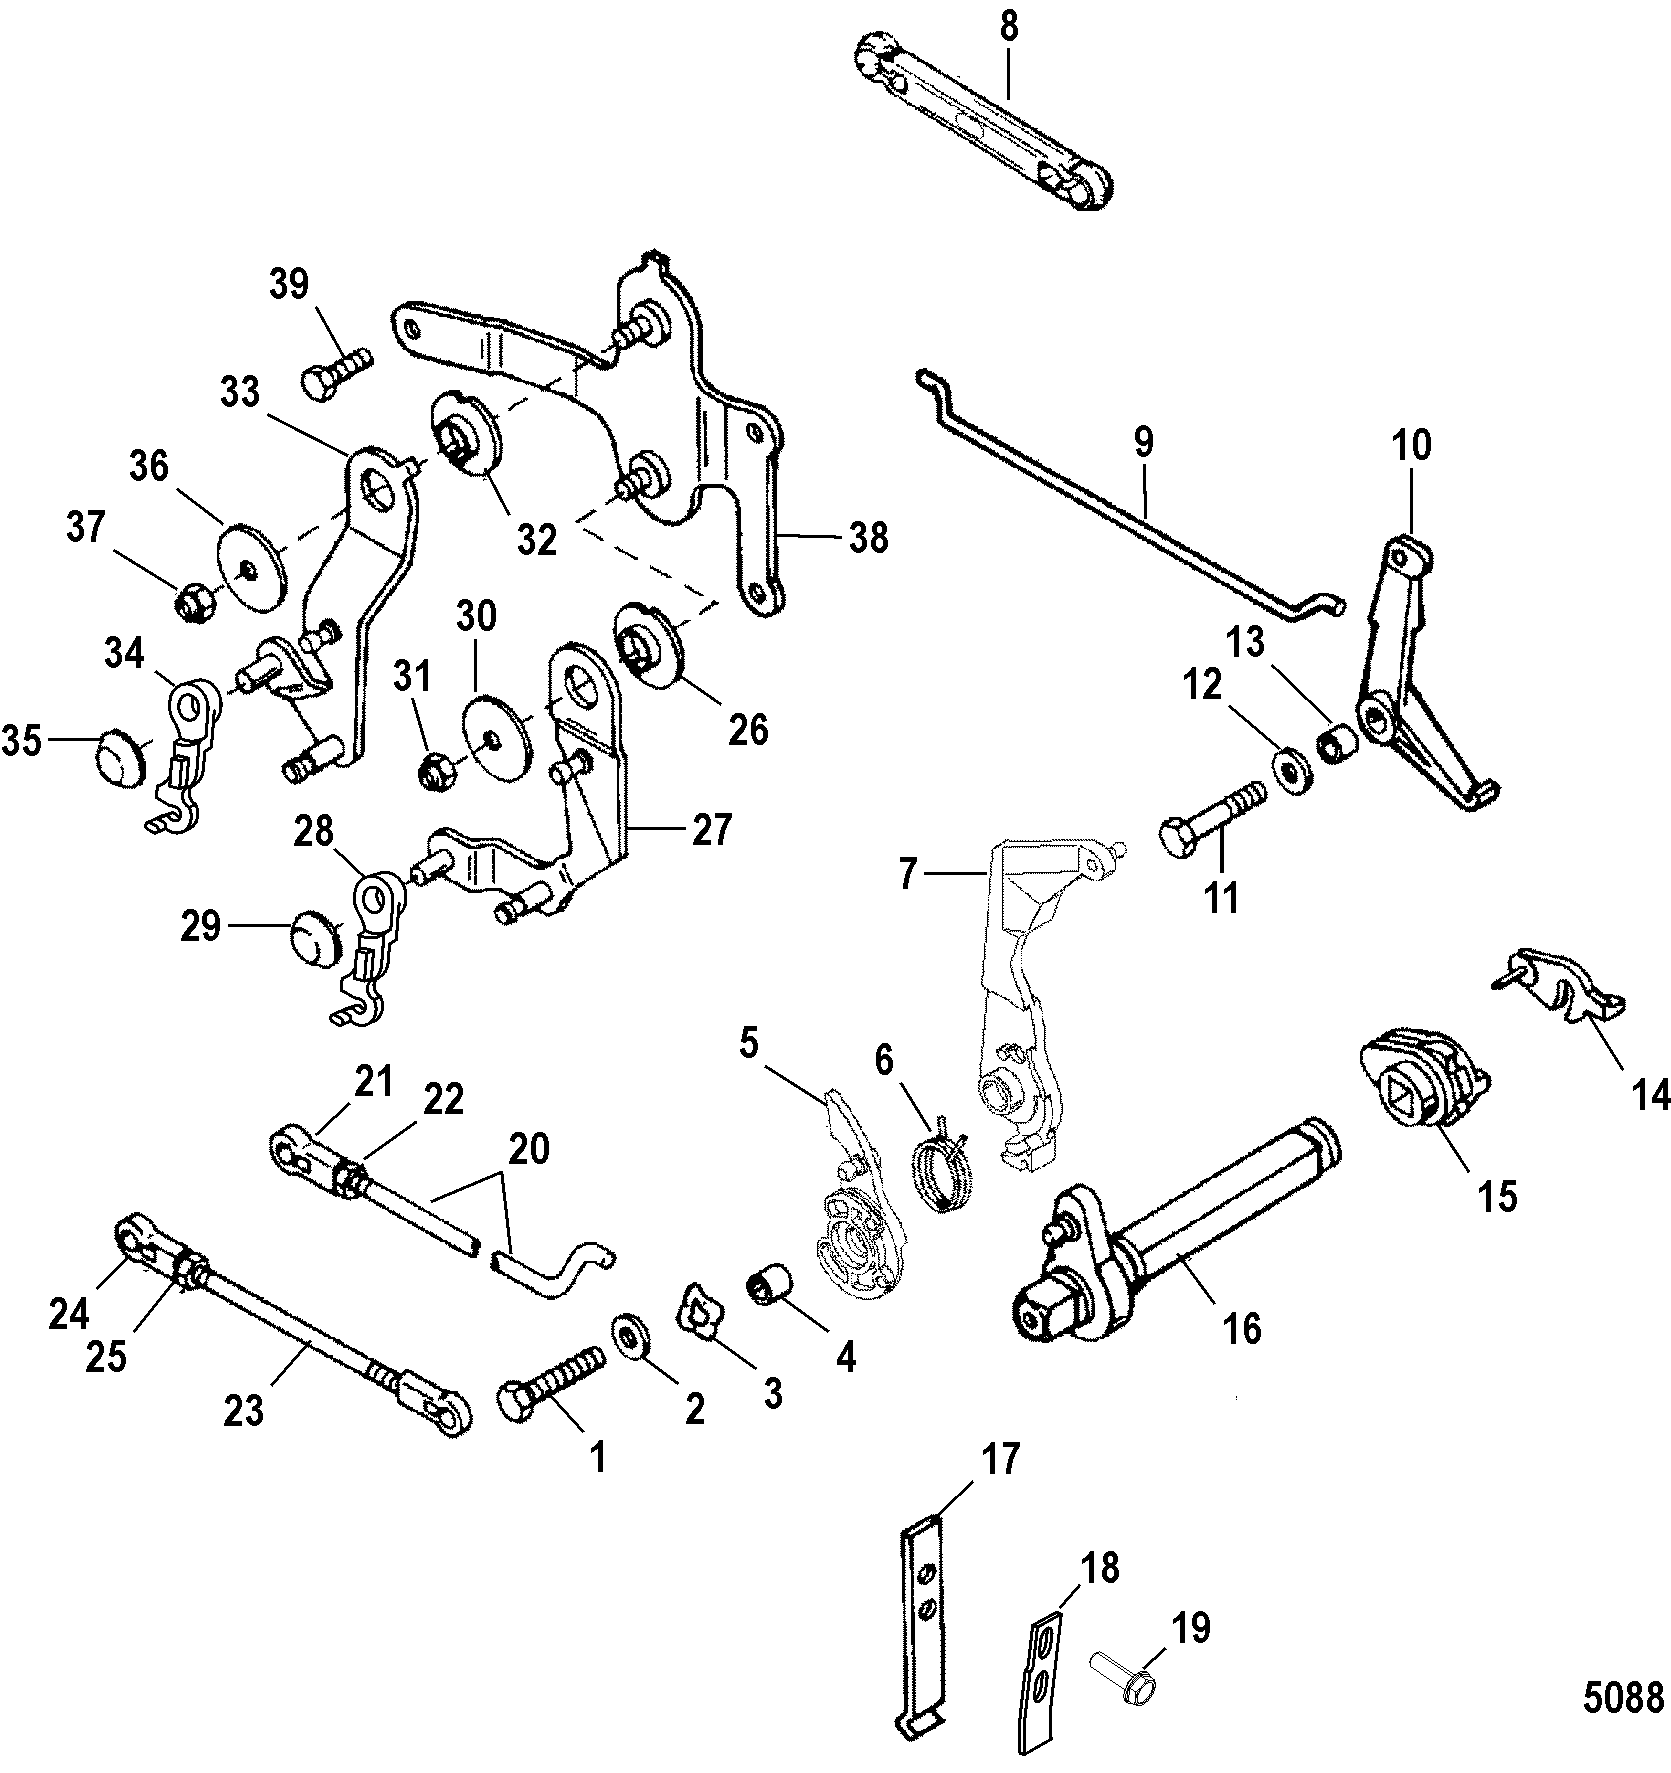 Throttle And Shift Linkage Remote Control For Mariner